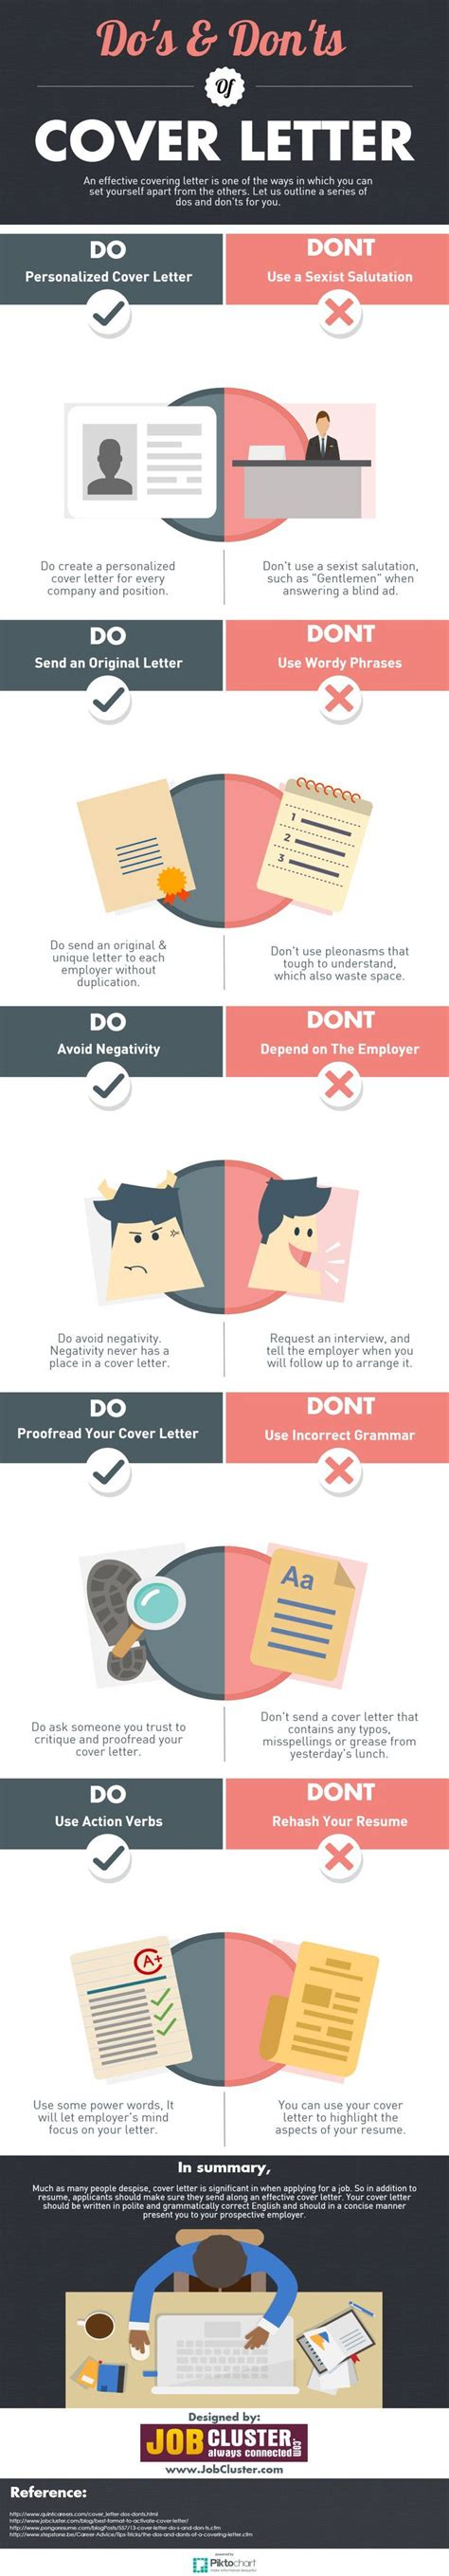 112 best images about your resume on